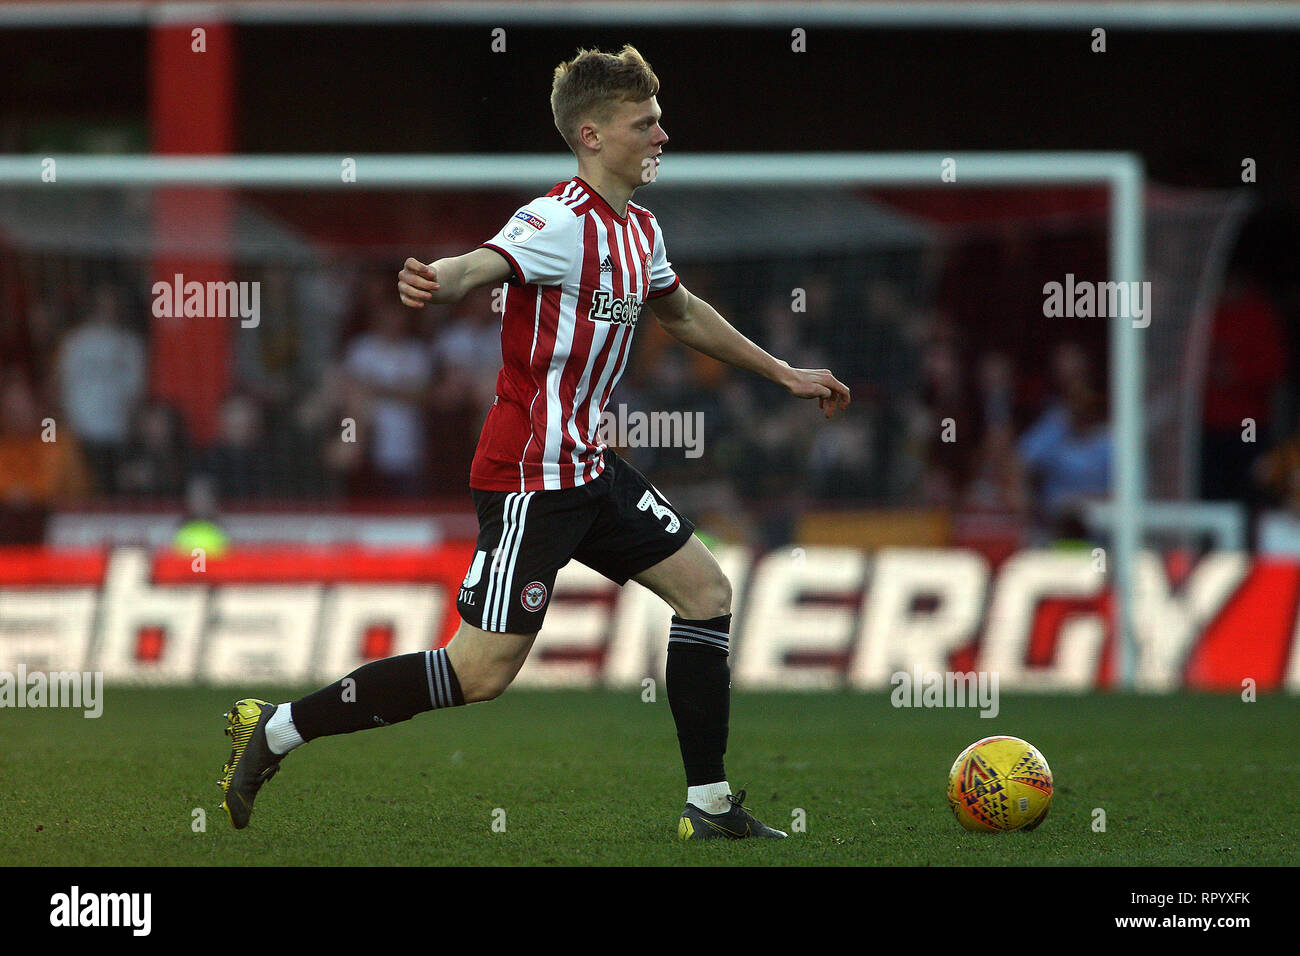 London, UK. 23rd Feb, 2019. Jan Zanburea of Brentford in action. EFL Skybet championship match, Brentford v Hull City at Griffin Park on Saturday 23rd February 2019 . this image may only be used for Editorial purposes. Editorial use only, license required for commercial use. No use in betting, games or a single club/league/player publications. pic by Steffan Bowen/Andrew Orchard sports photography/Alamy Live news Credit: Andrew Orchard sports photography/Alamy Live News Stock Photo